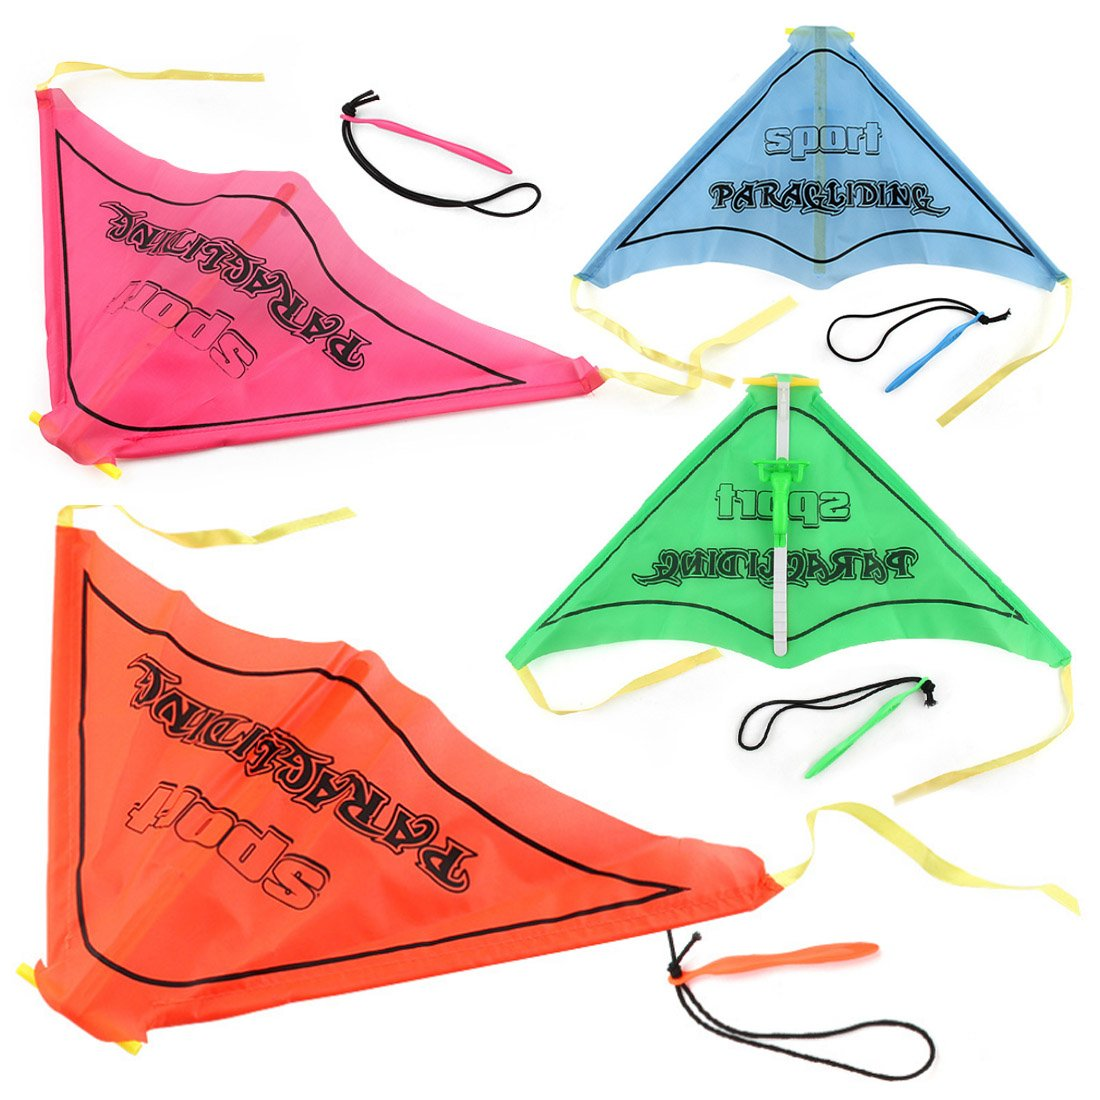 Paragliding Flying, Lingxuinfo 4PCS Kids Hand Glider Paragliding Toy Set Launch Outdoor Toy (Assorted Colors)